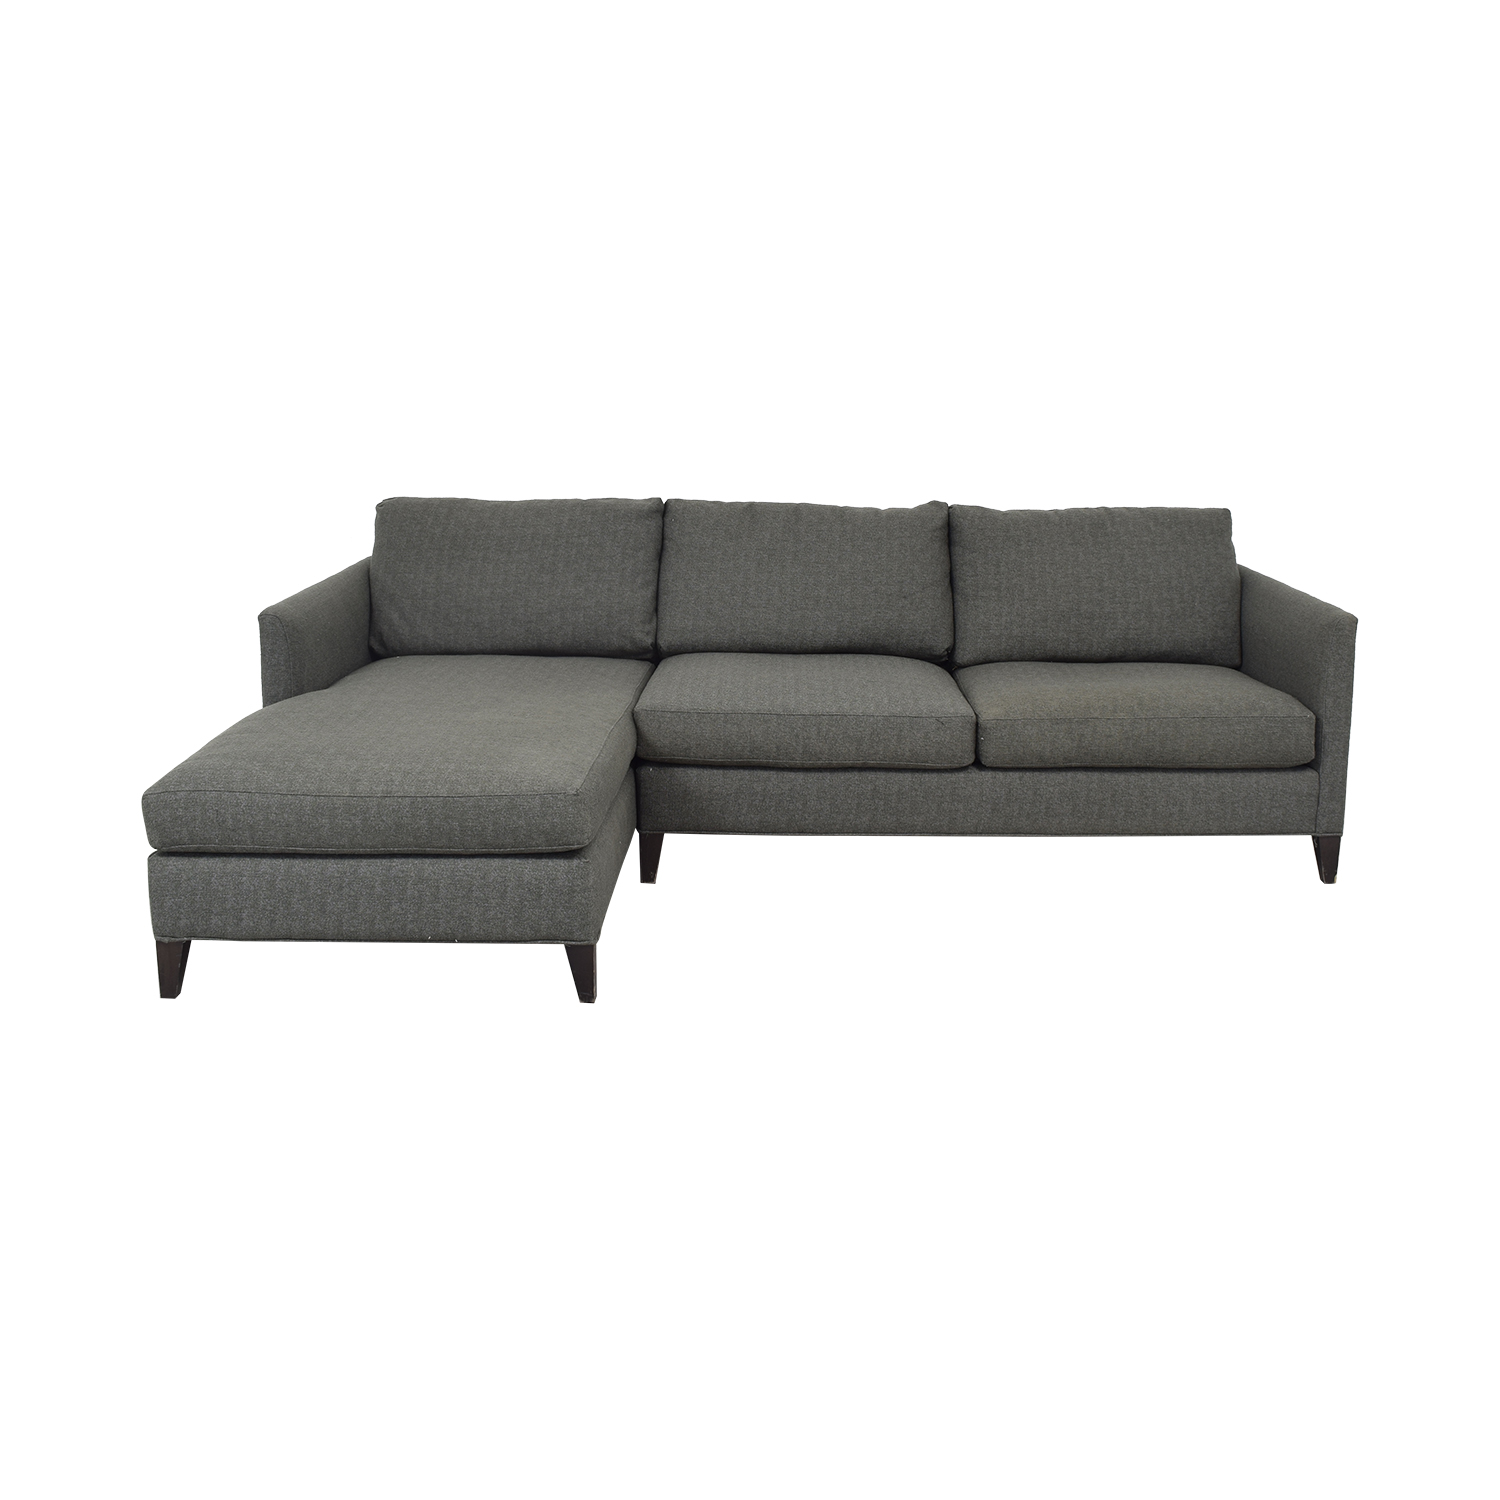 Crate & Barrel Crate & Barrel Chaise Sectional Sofa used